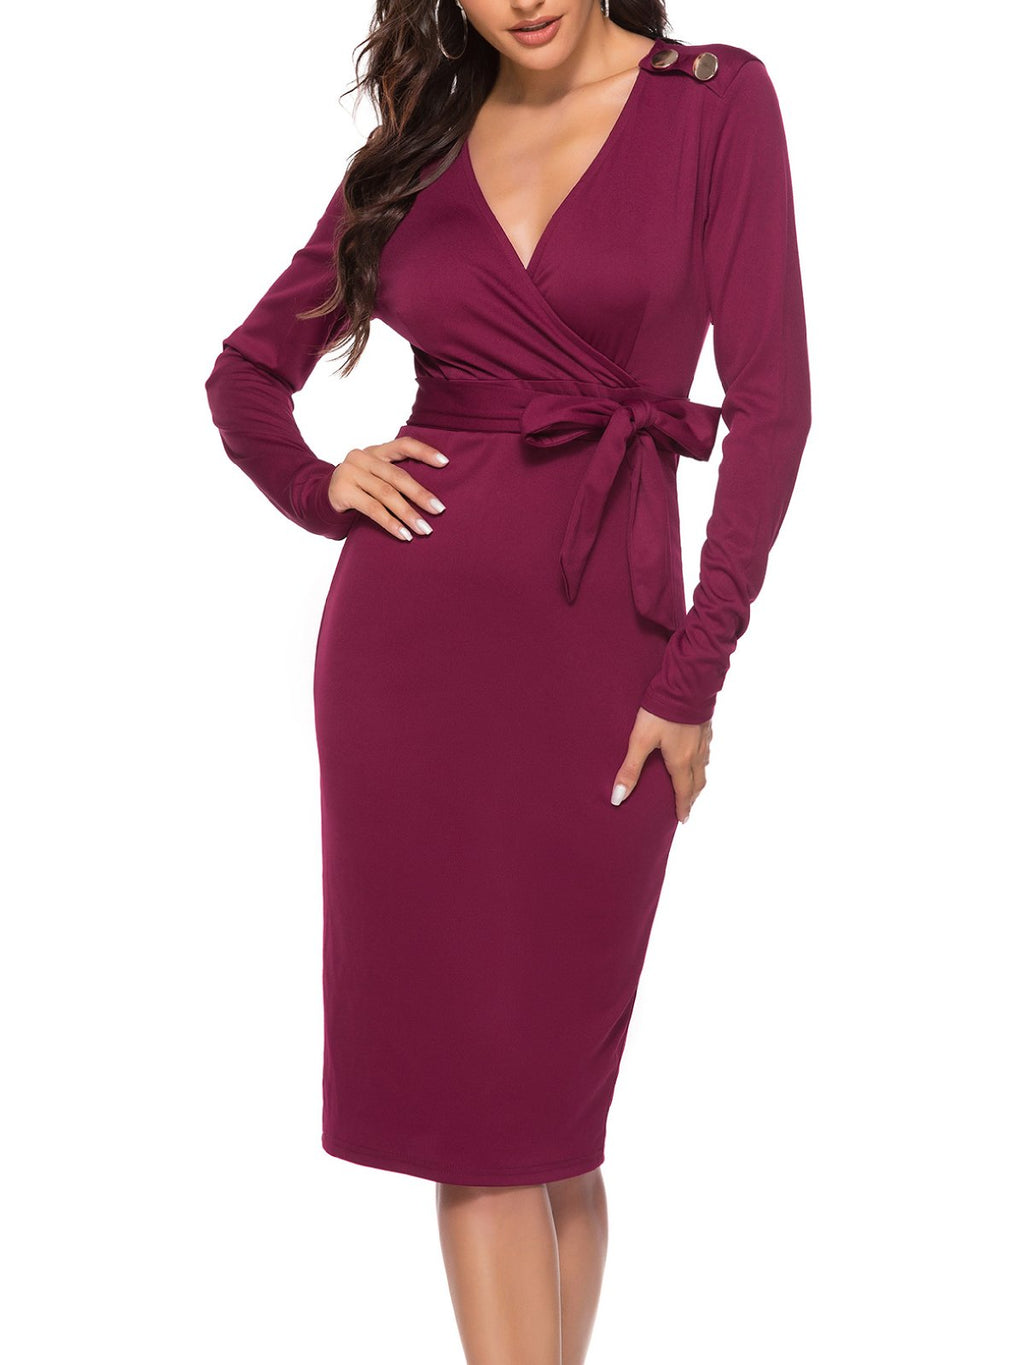 Bow Elegant Long Sleeve V Neck Plus Size Work Pencil Bodycon Day Dress Rikkishop